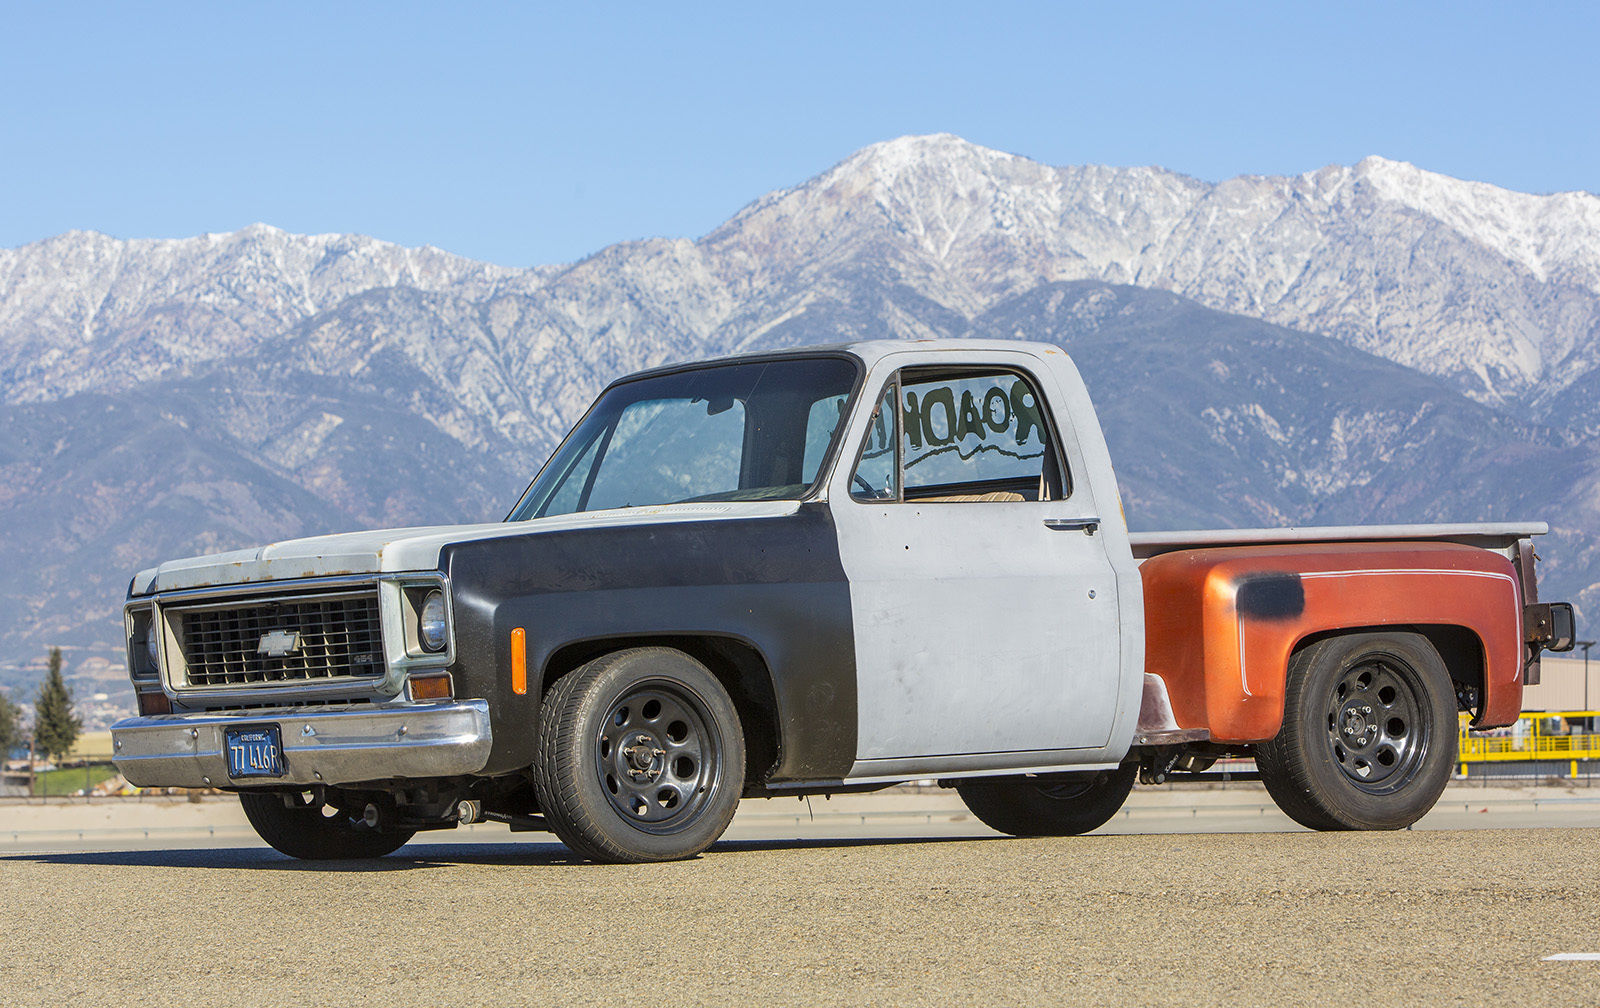 Roadkill's Muscle Truck Is Up For Auction! If You Have Lusted After The Loud And Proud Chevy C-10, Now's Your Chance!